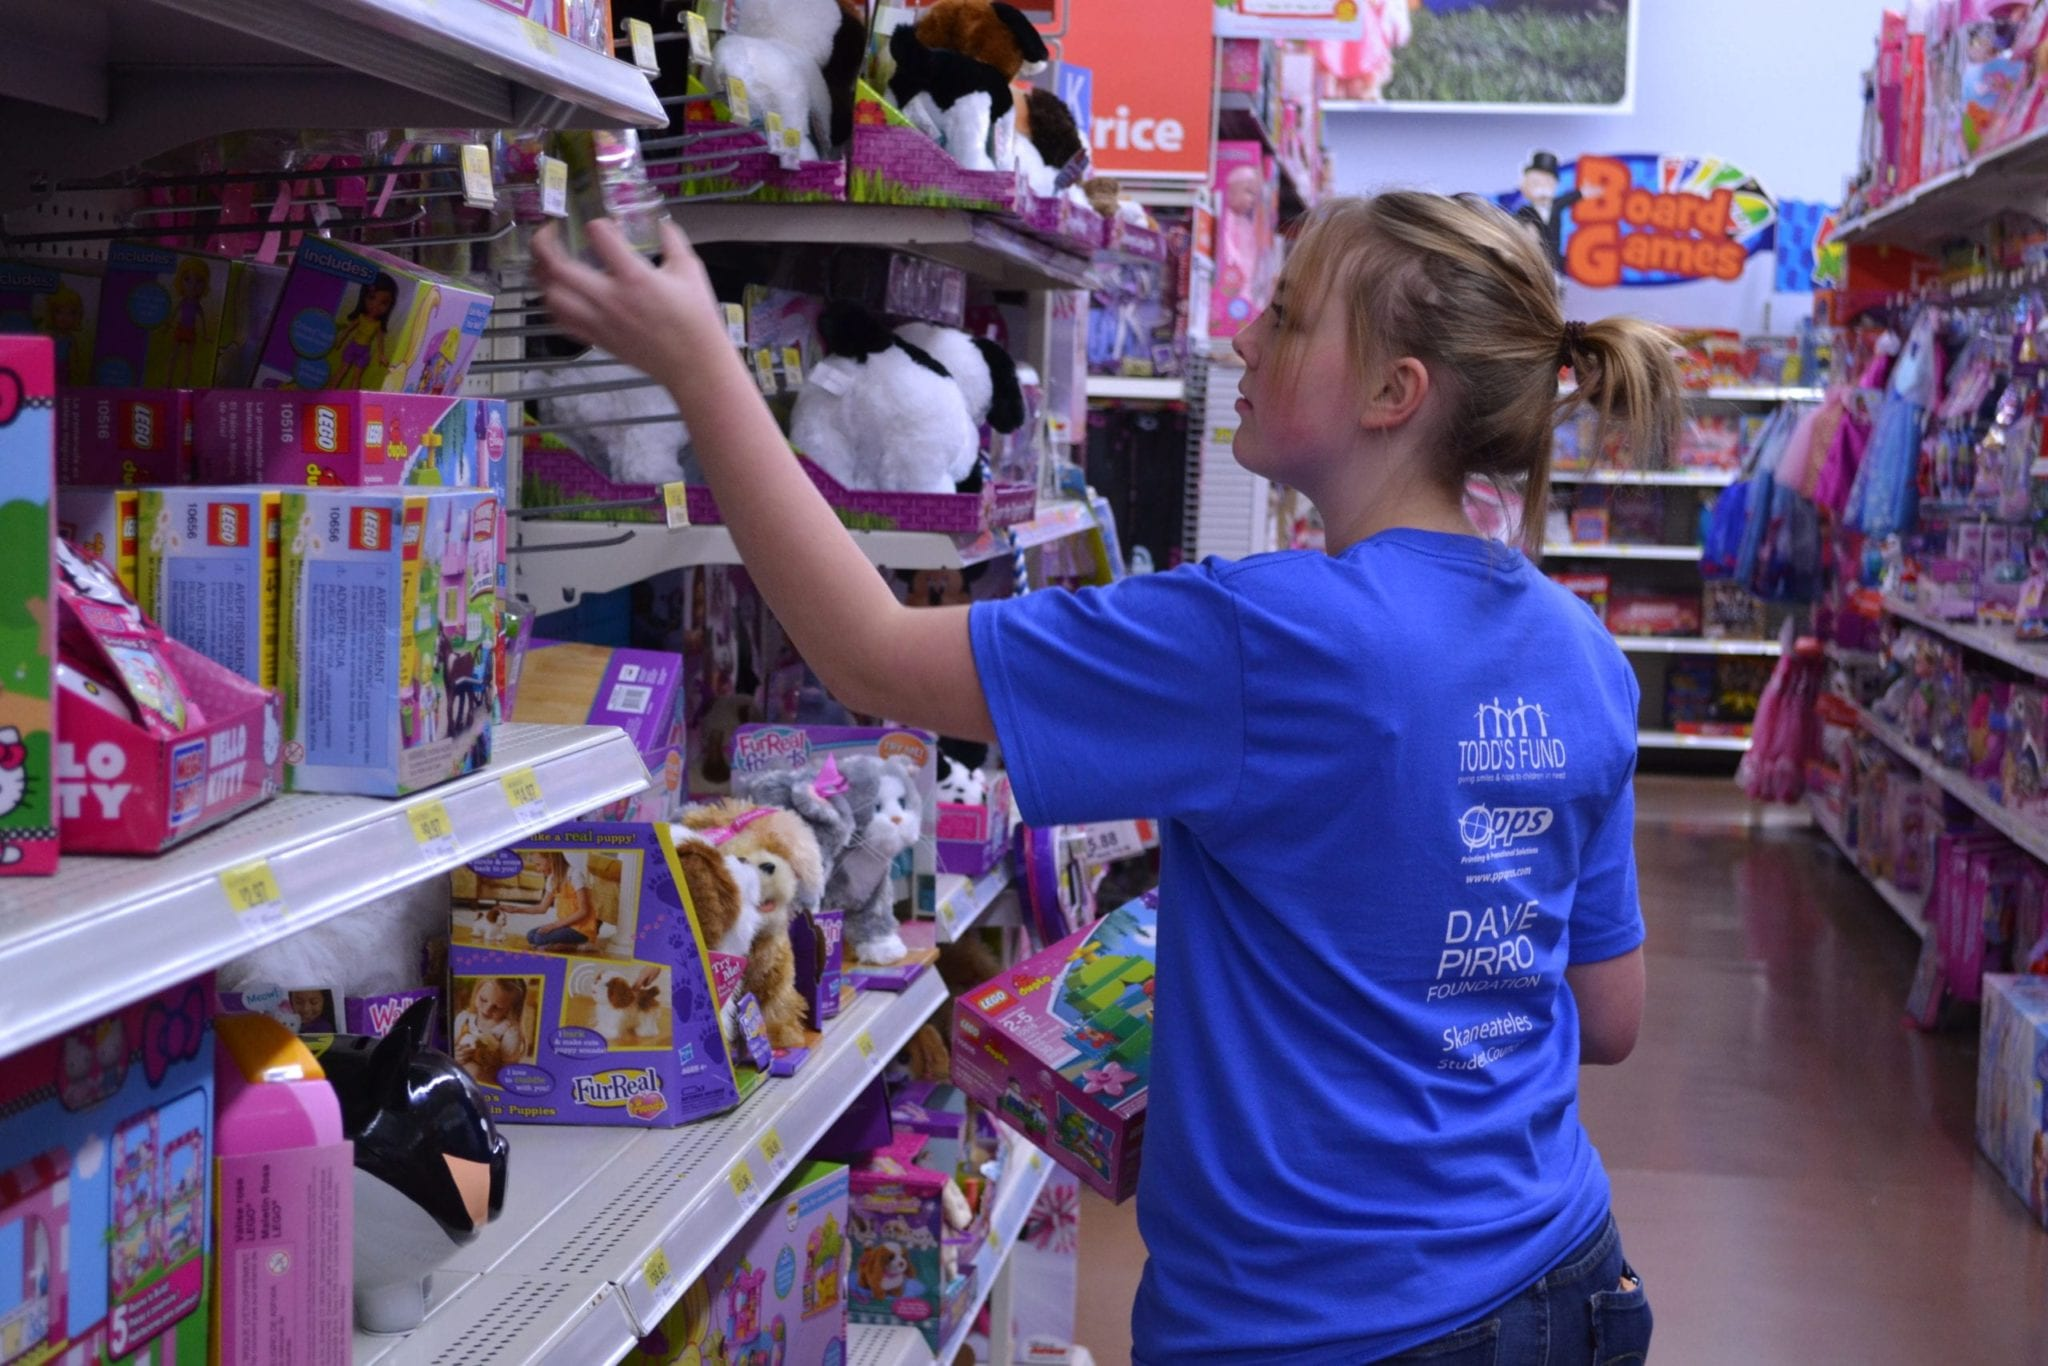 Skaneateles students spend $13k on gifts for charity